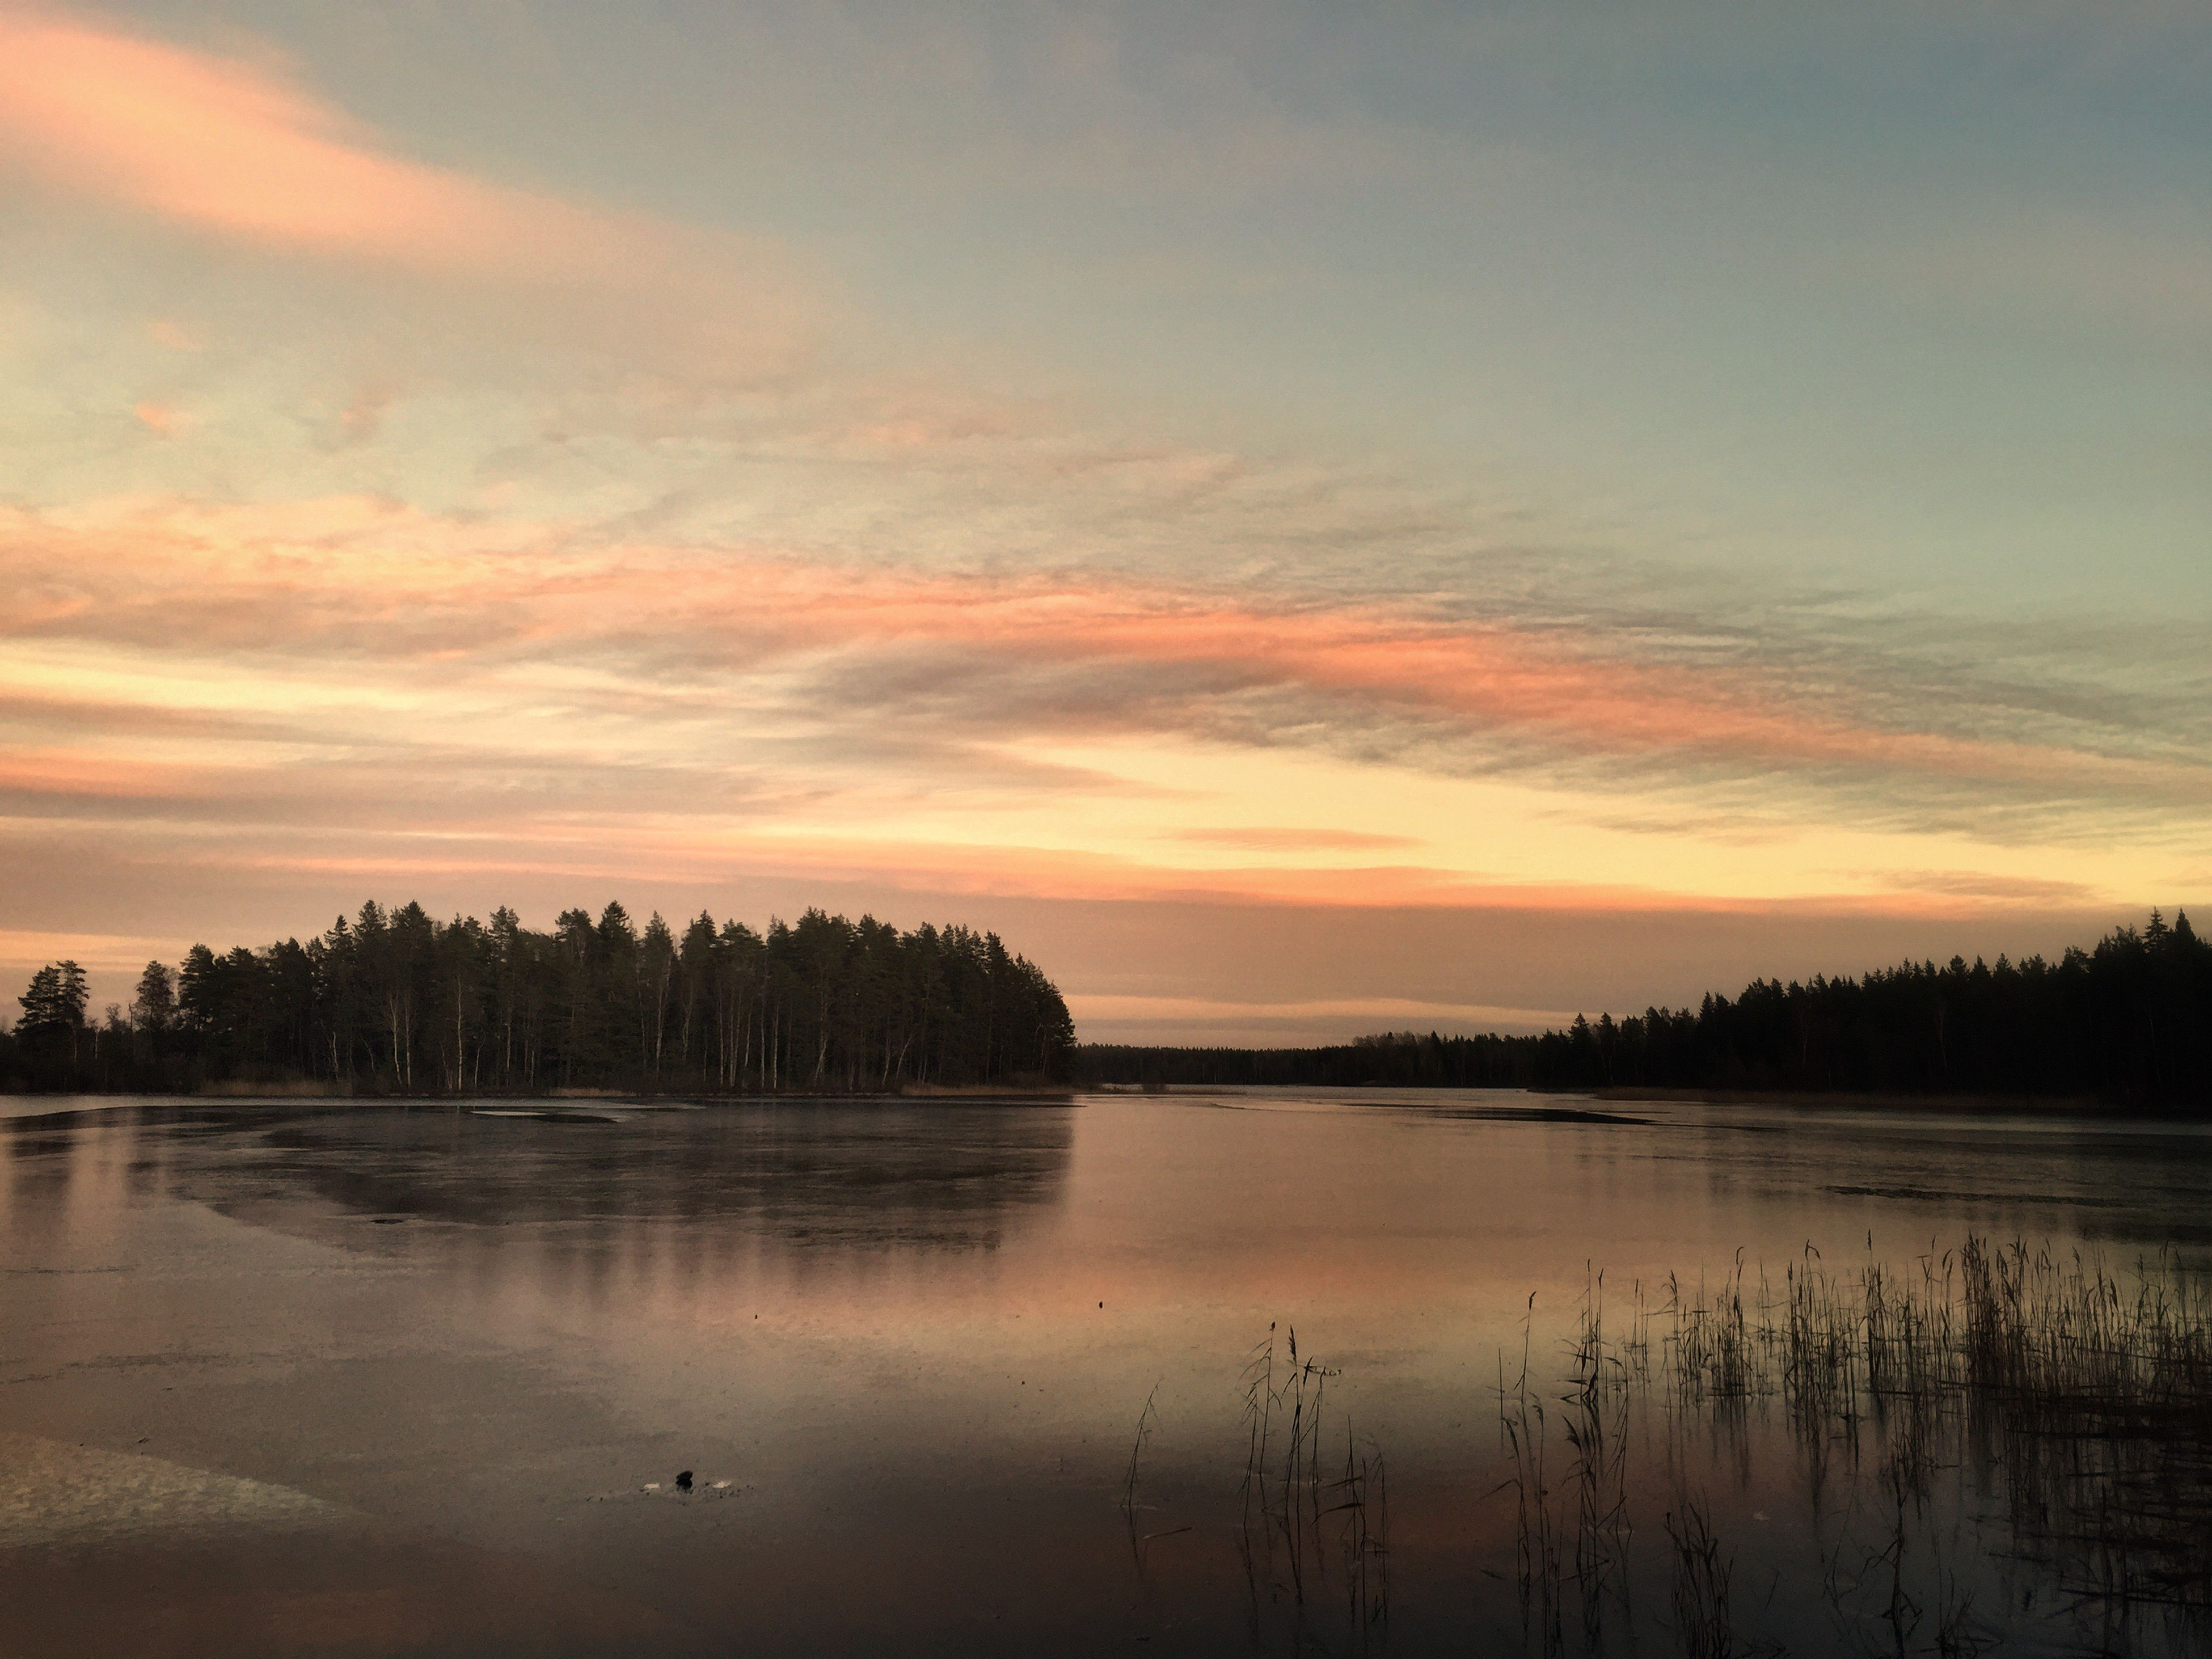 Sky Sunset Beauty In Nature Nature Scenics Reflection Lake Tranquility No People Countryside Winter Småland